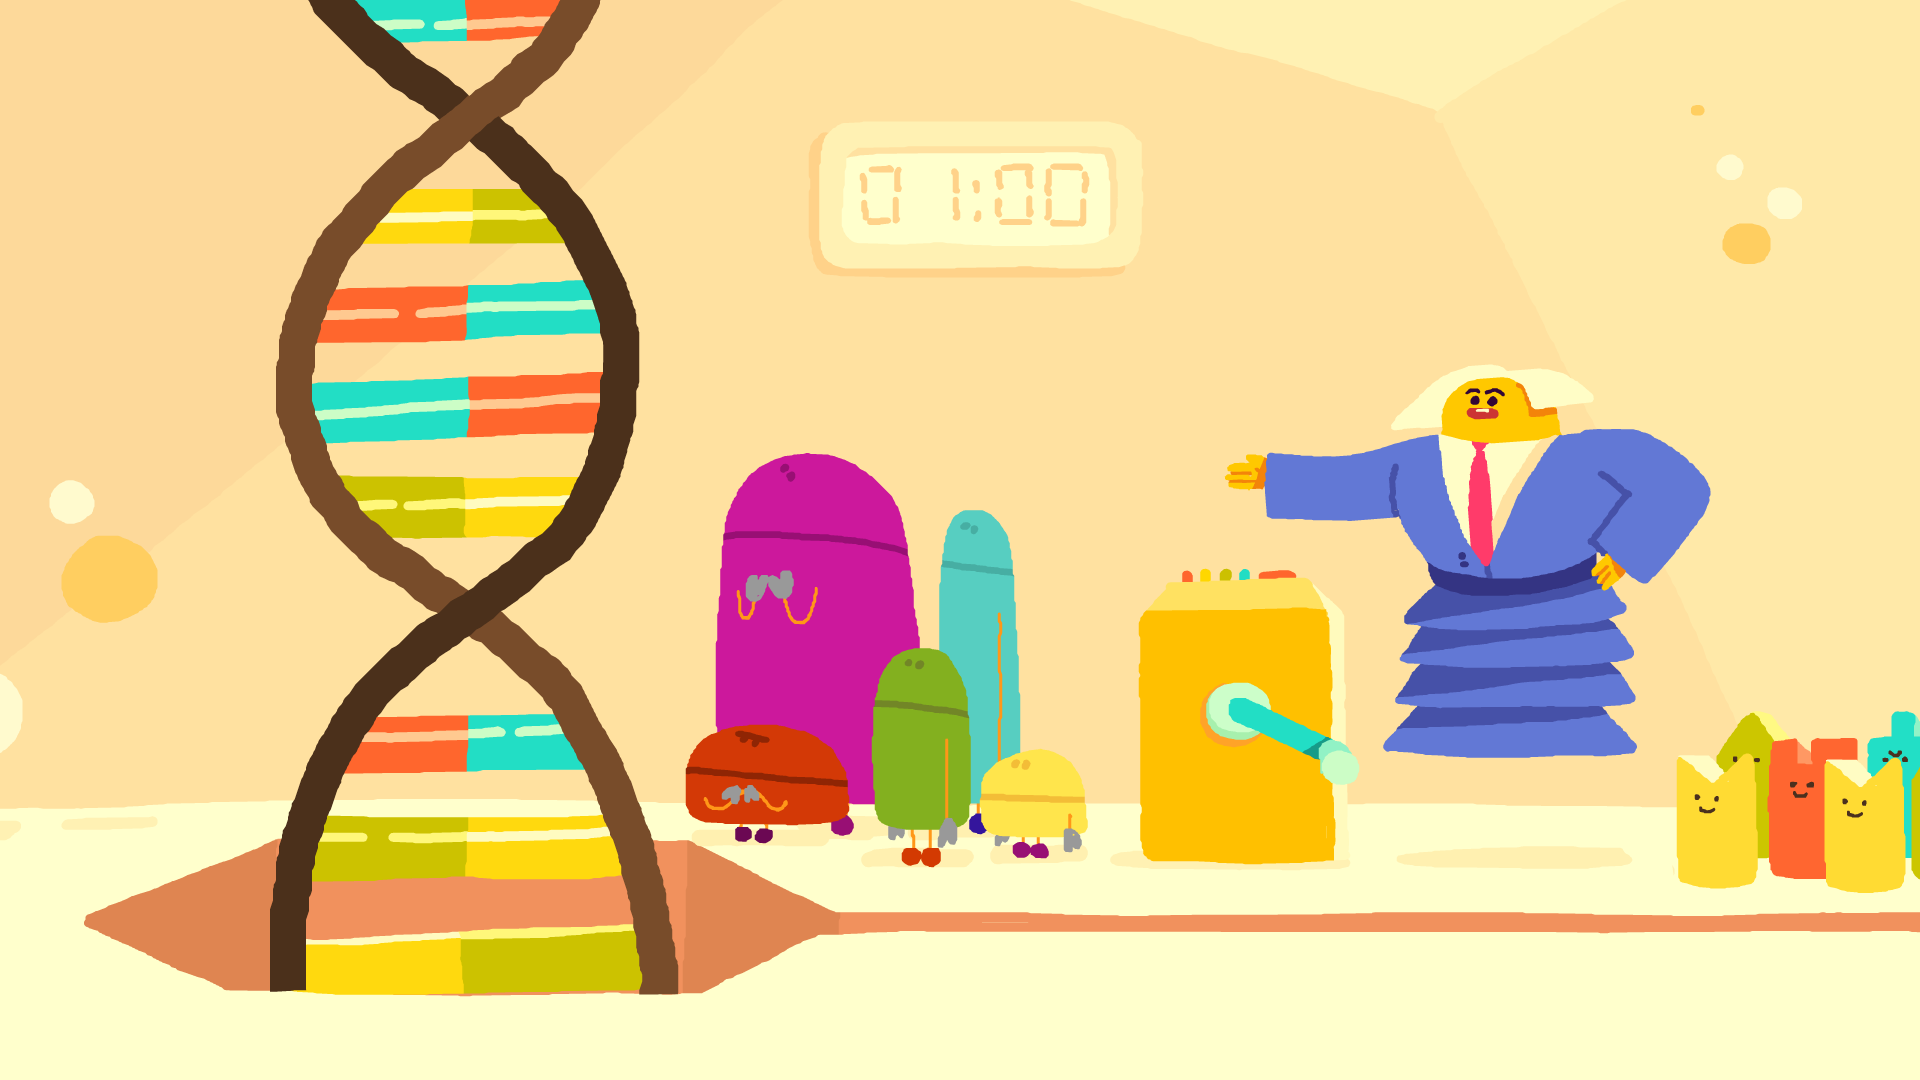 dna_cs_sq050_polymerase_revision_0014.png